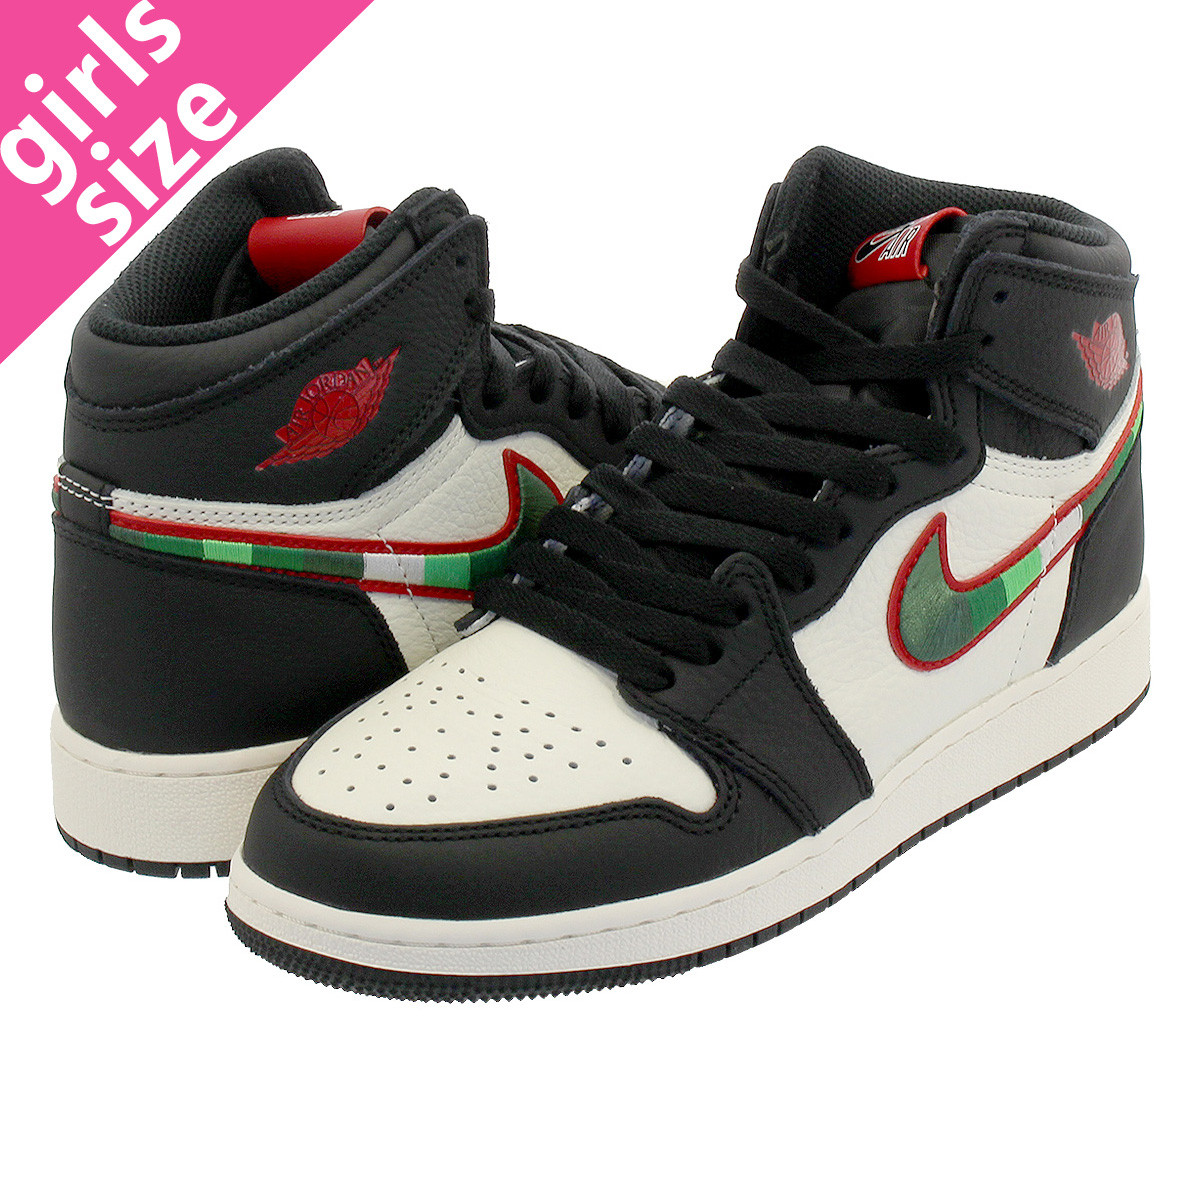 c086493fd32a NIKE AIR JORDAN 1 RETRO HIGH OG BG BLACK SAIL UNIVERSITY BLUE VARSITY RED  575